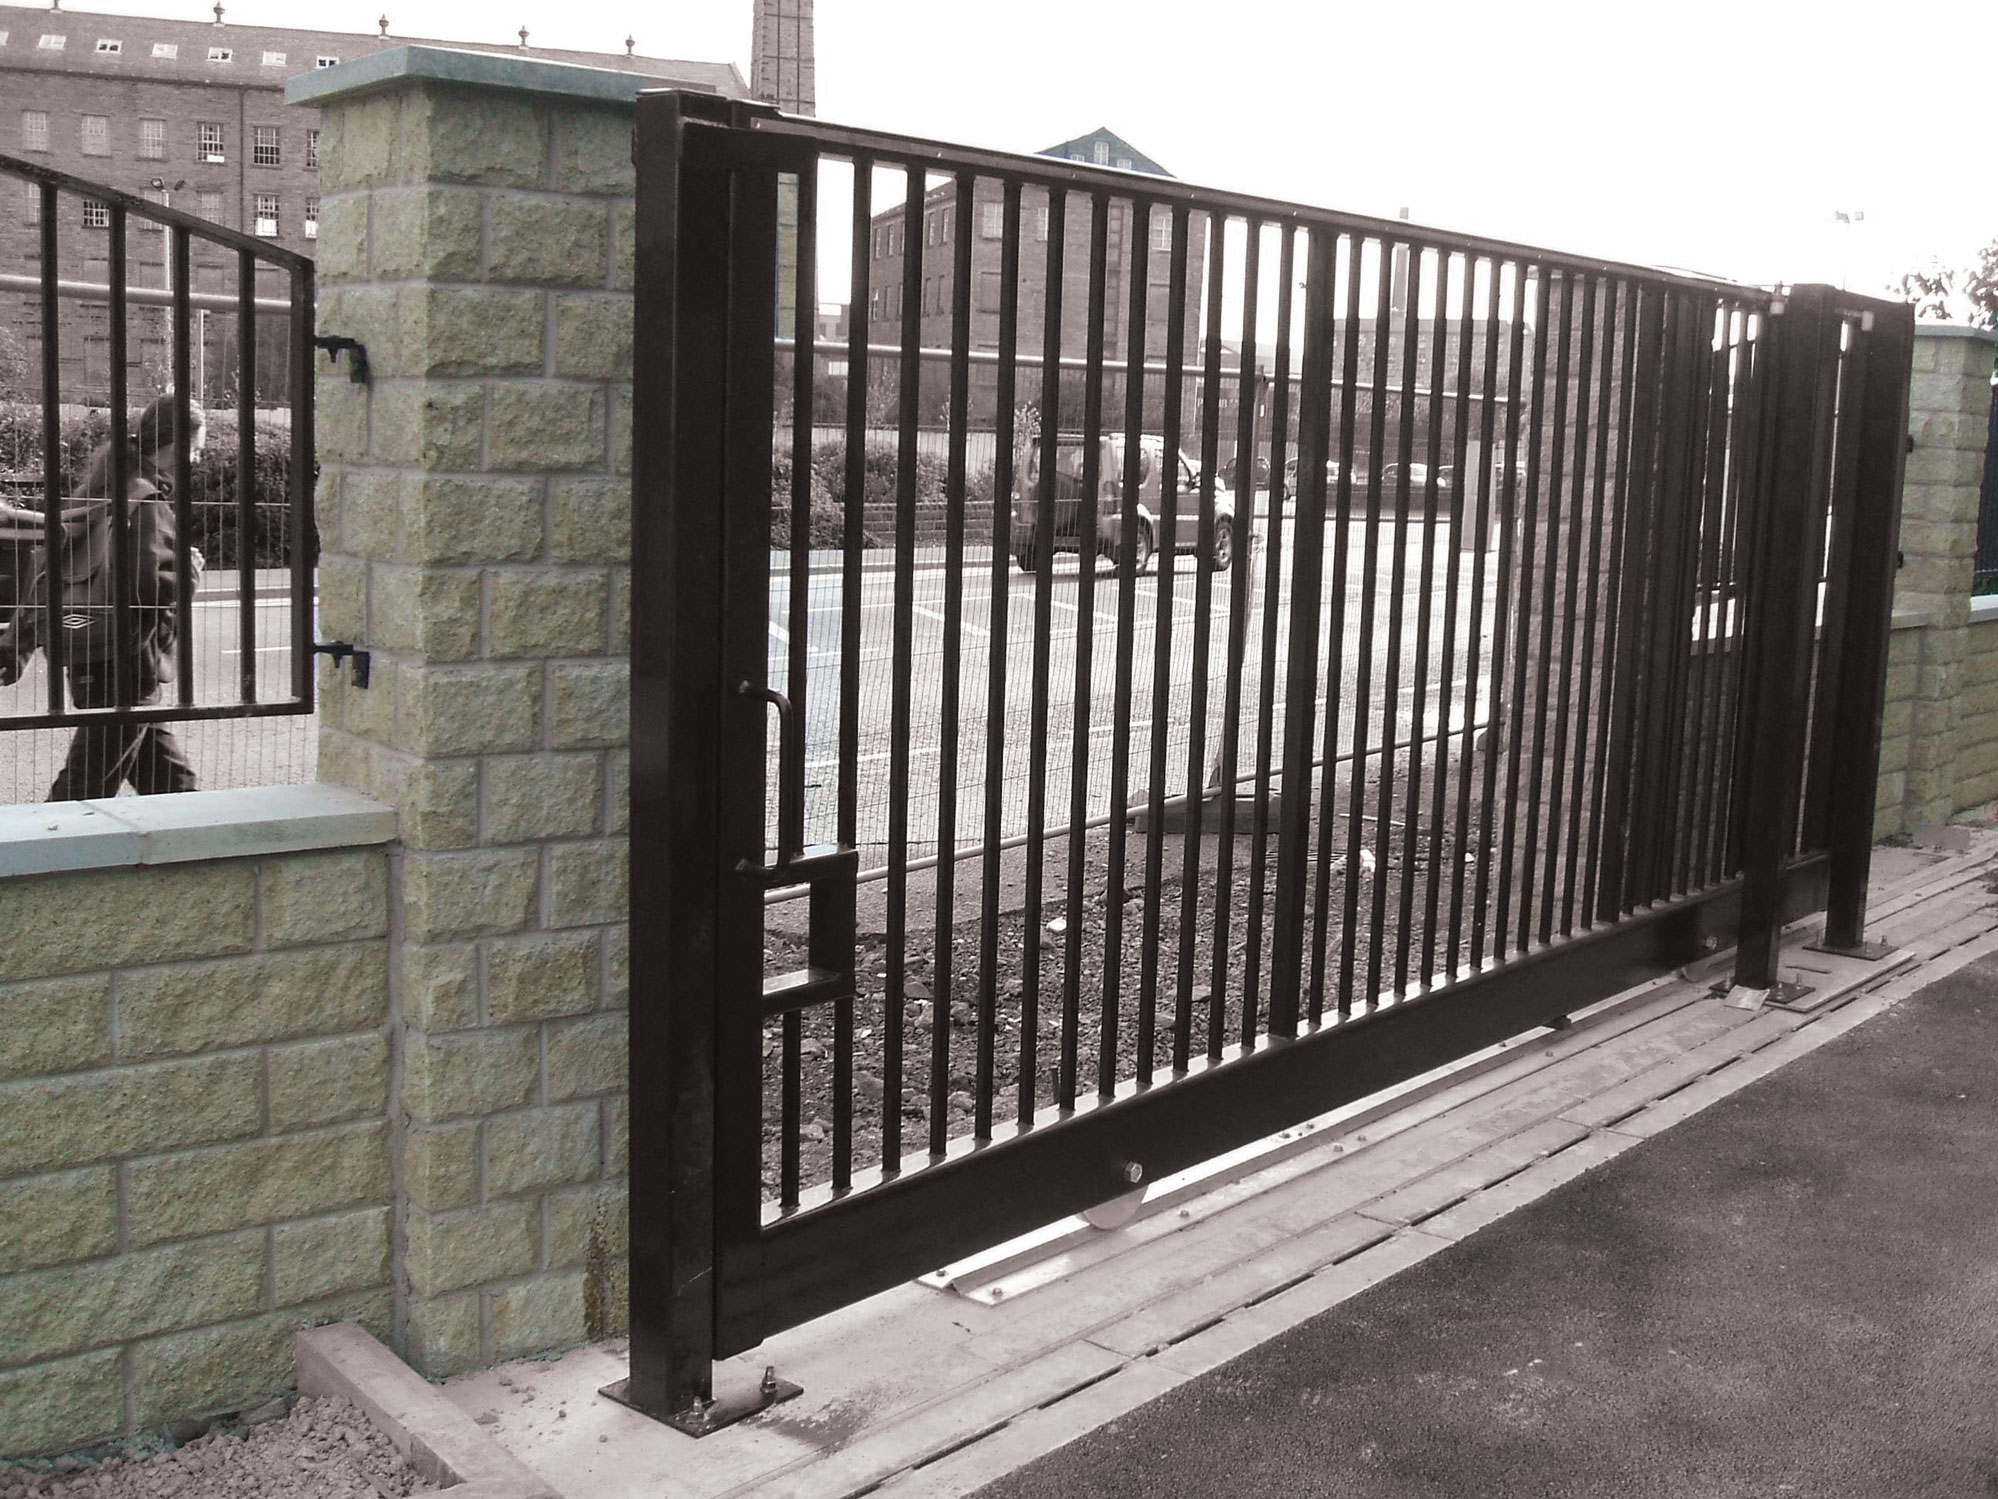 Avon Tg1000 Groundtrack Automatic Sliding Gate Avon Barrier